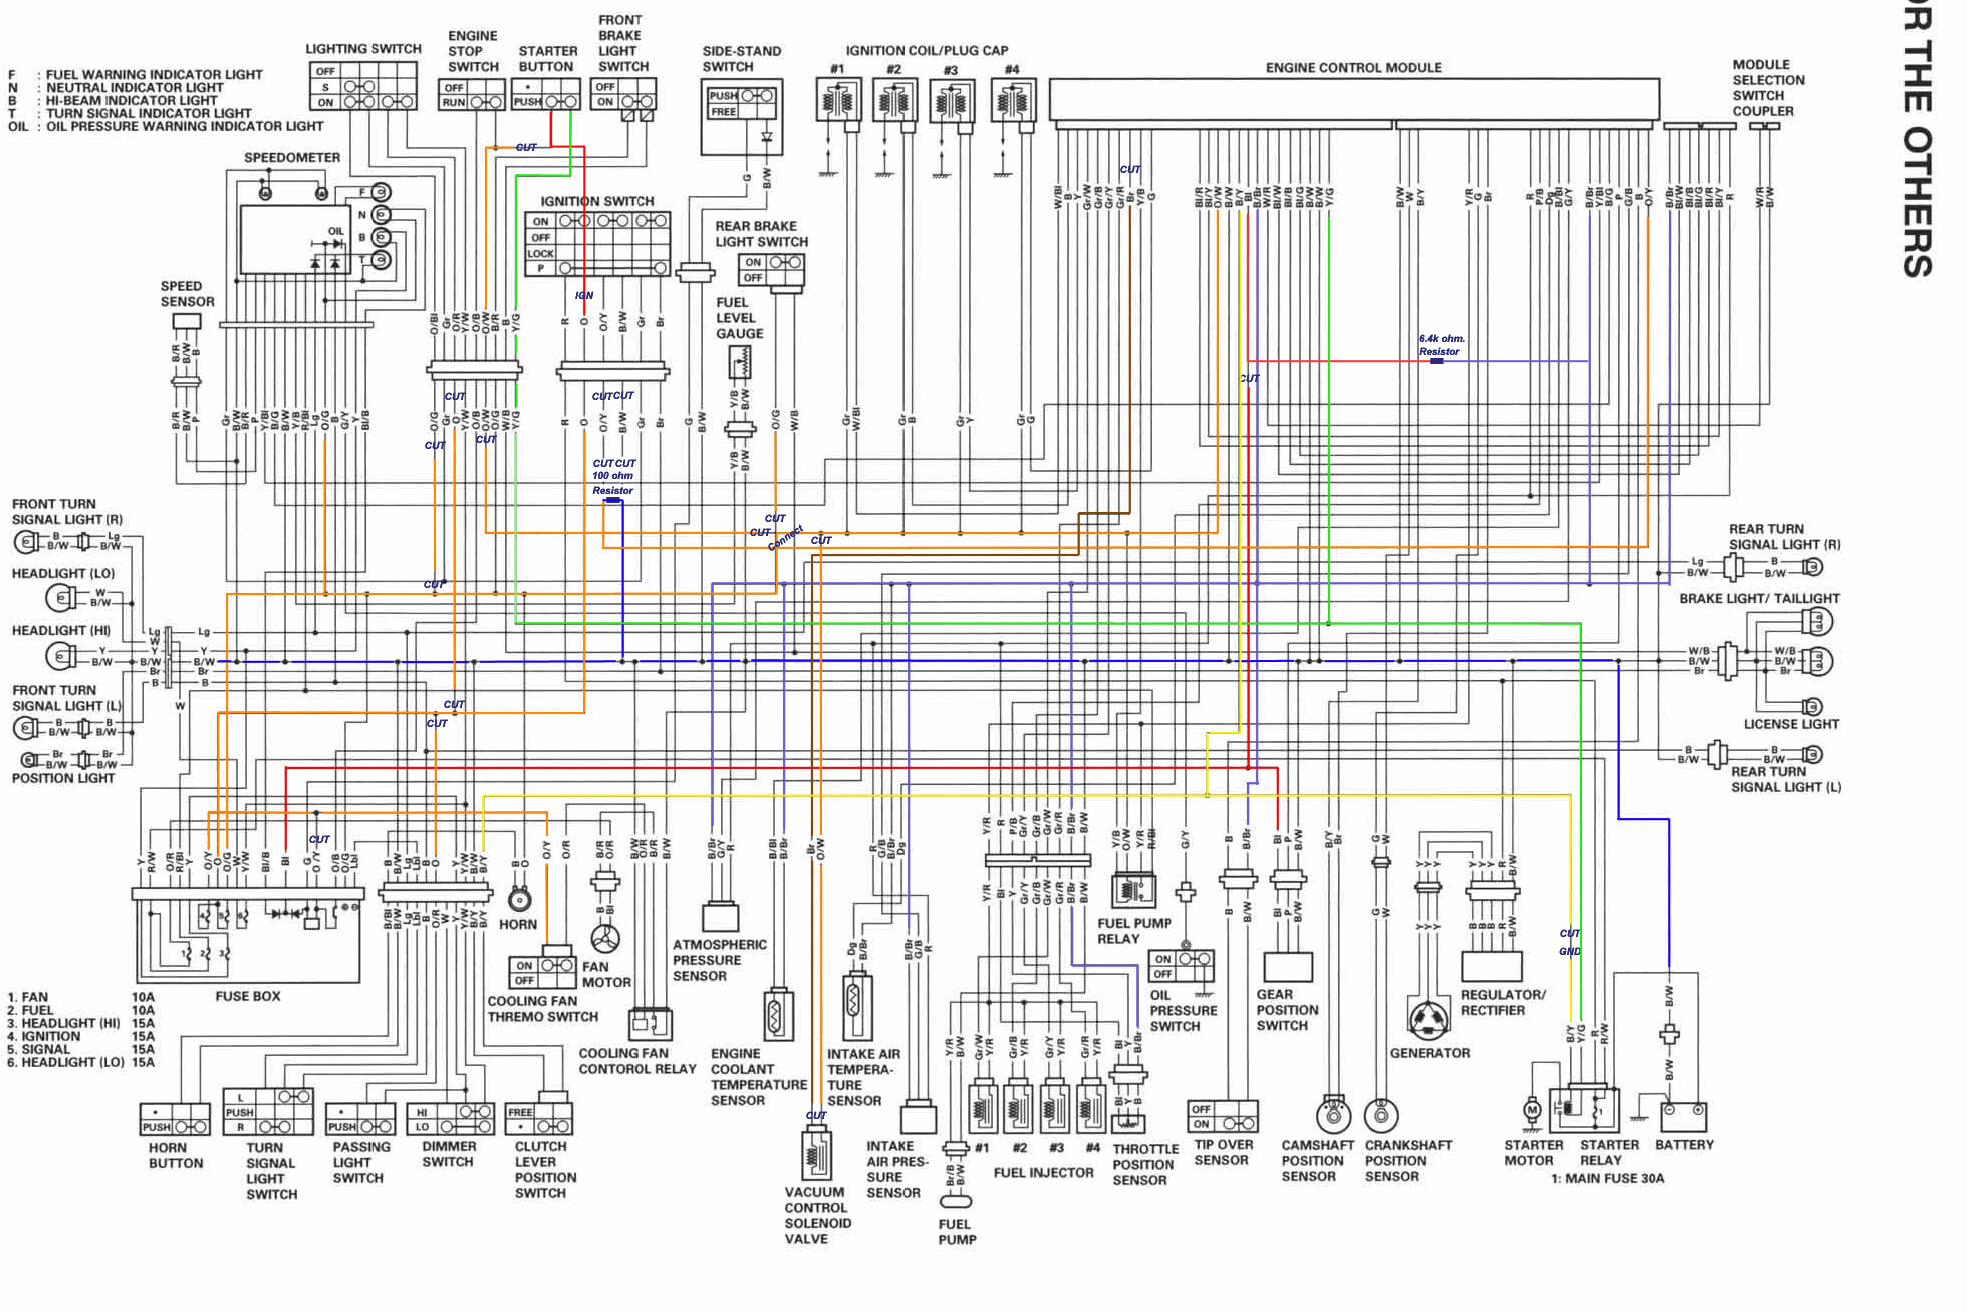 DIAGRAM] 2000 Gsxr 750 Wiring Diagram Schematic FULL Version HD Quality Diagram  Schematic - ALLKERALAJOBVACANCY.TOUSLESMEMES.FRallkeralajobvacancy.touslesmemes.fr